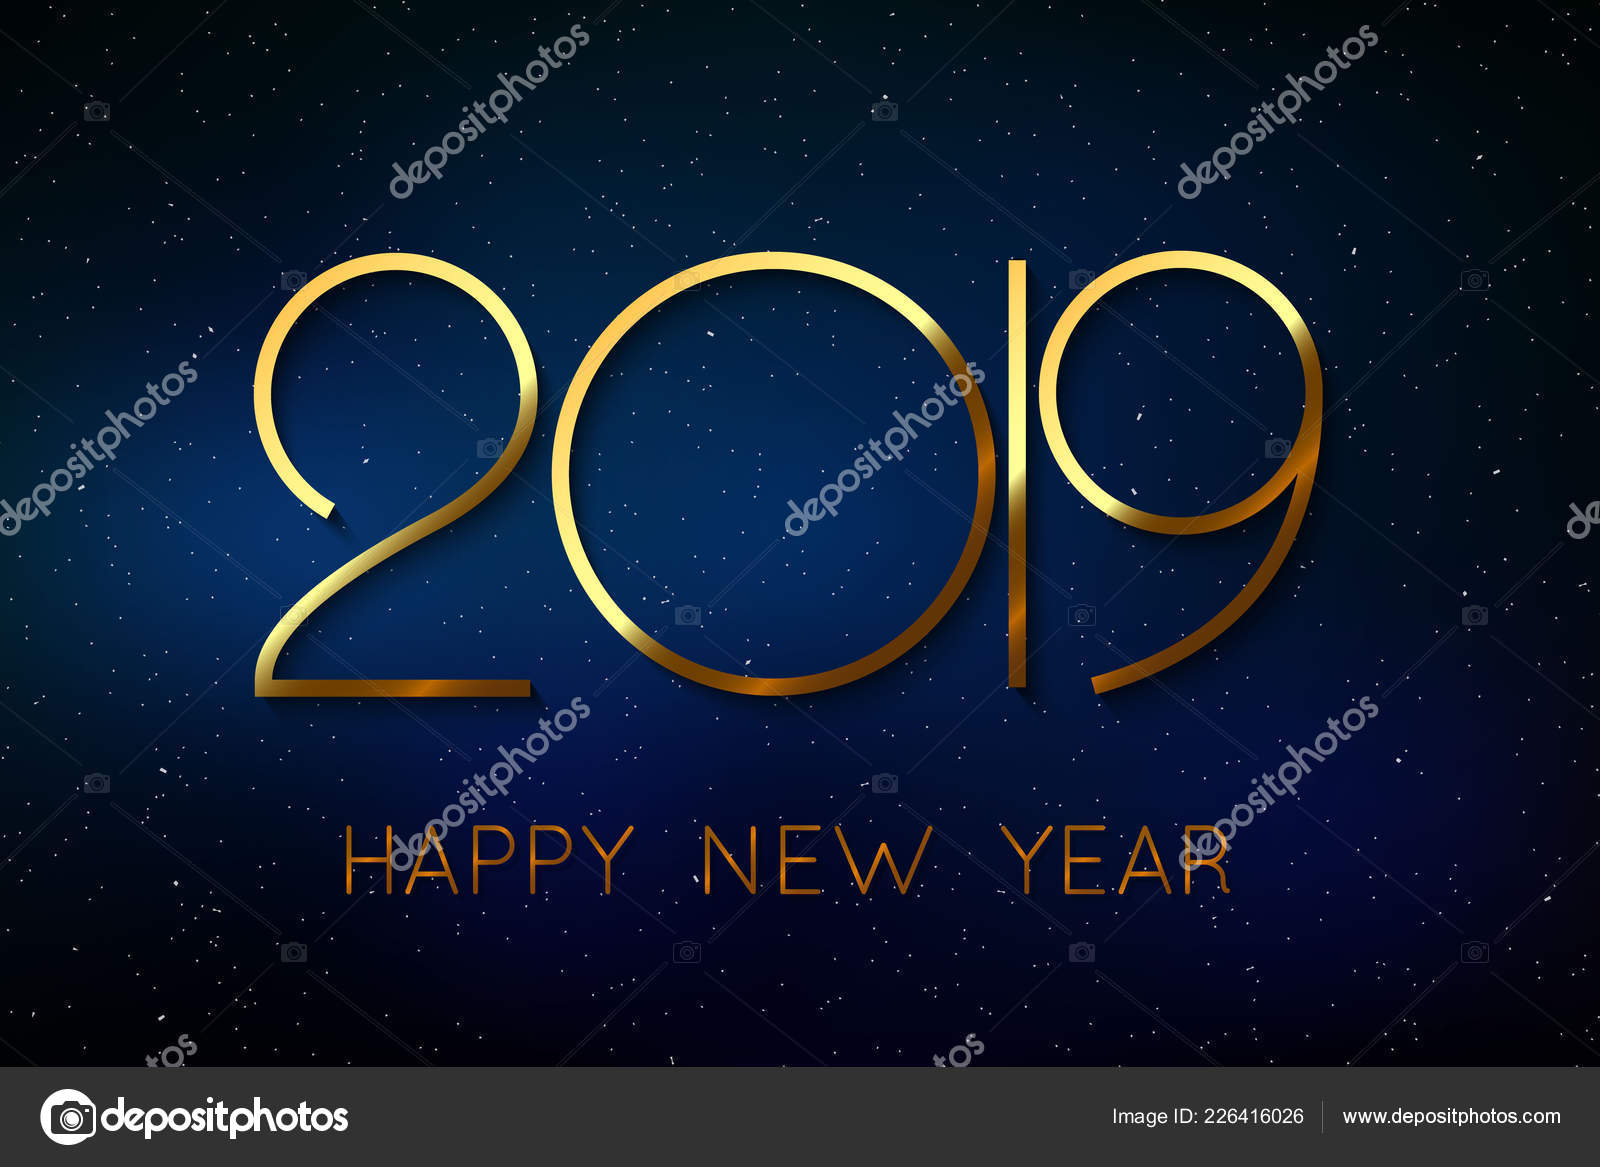 Happy New Year 2019 Background Greeting Card Design Stock Vector